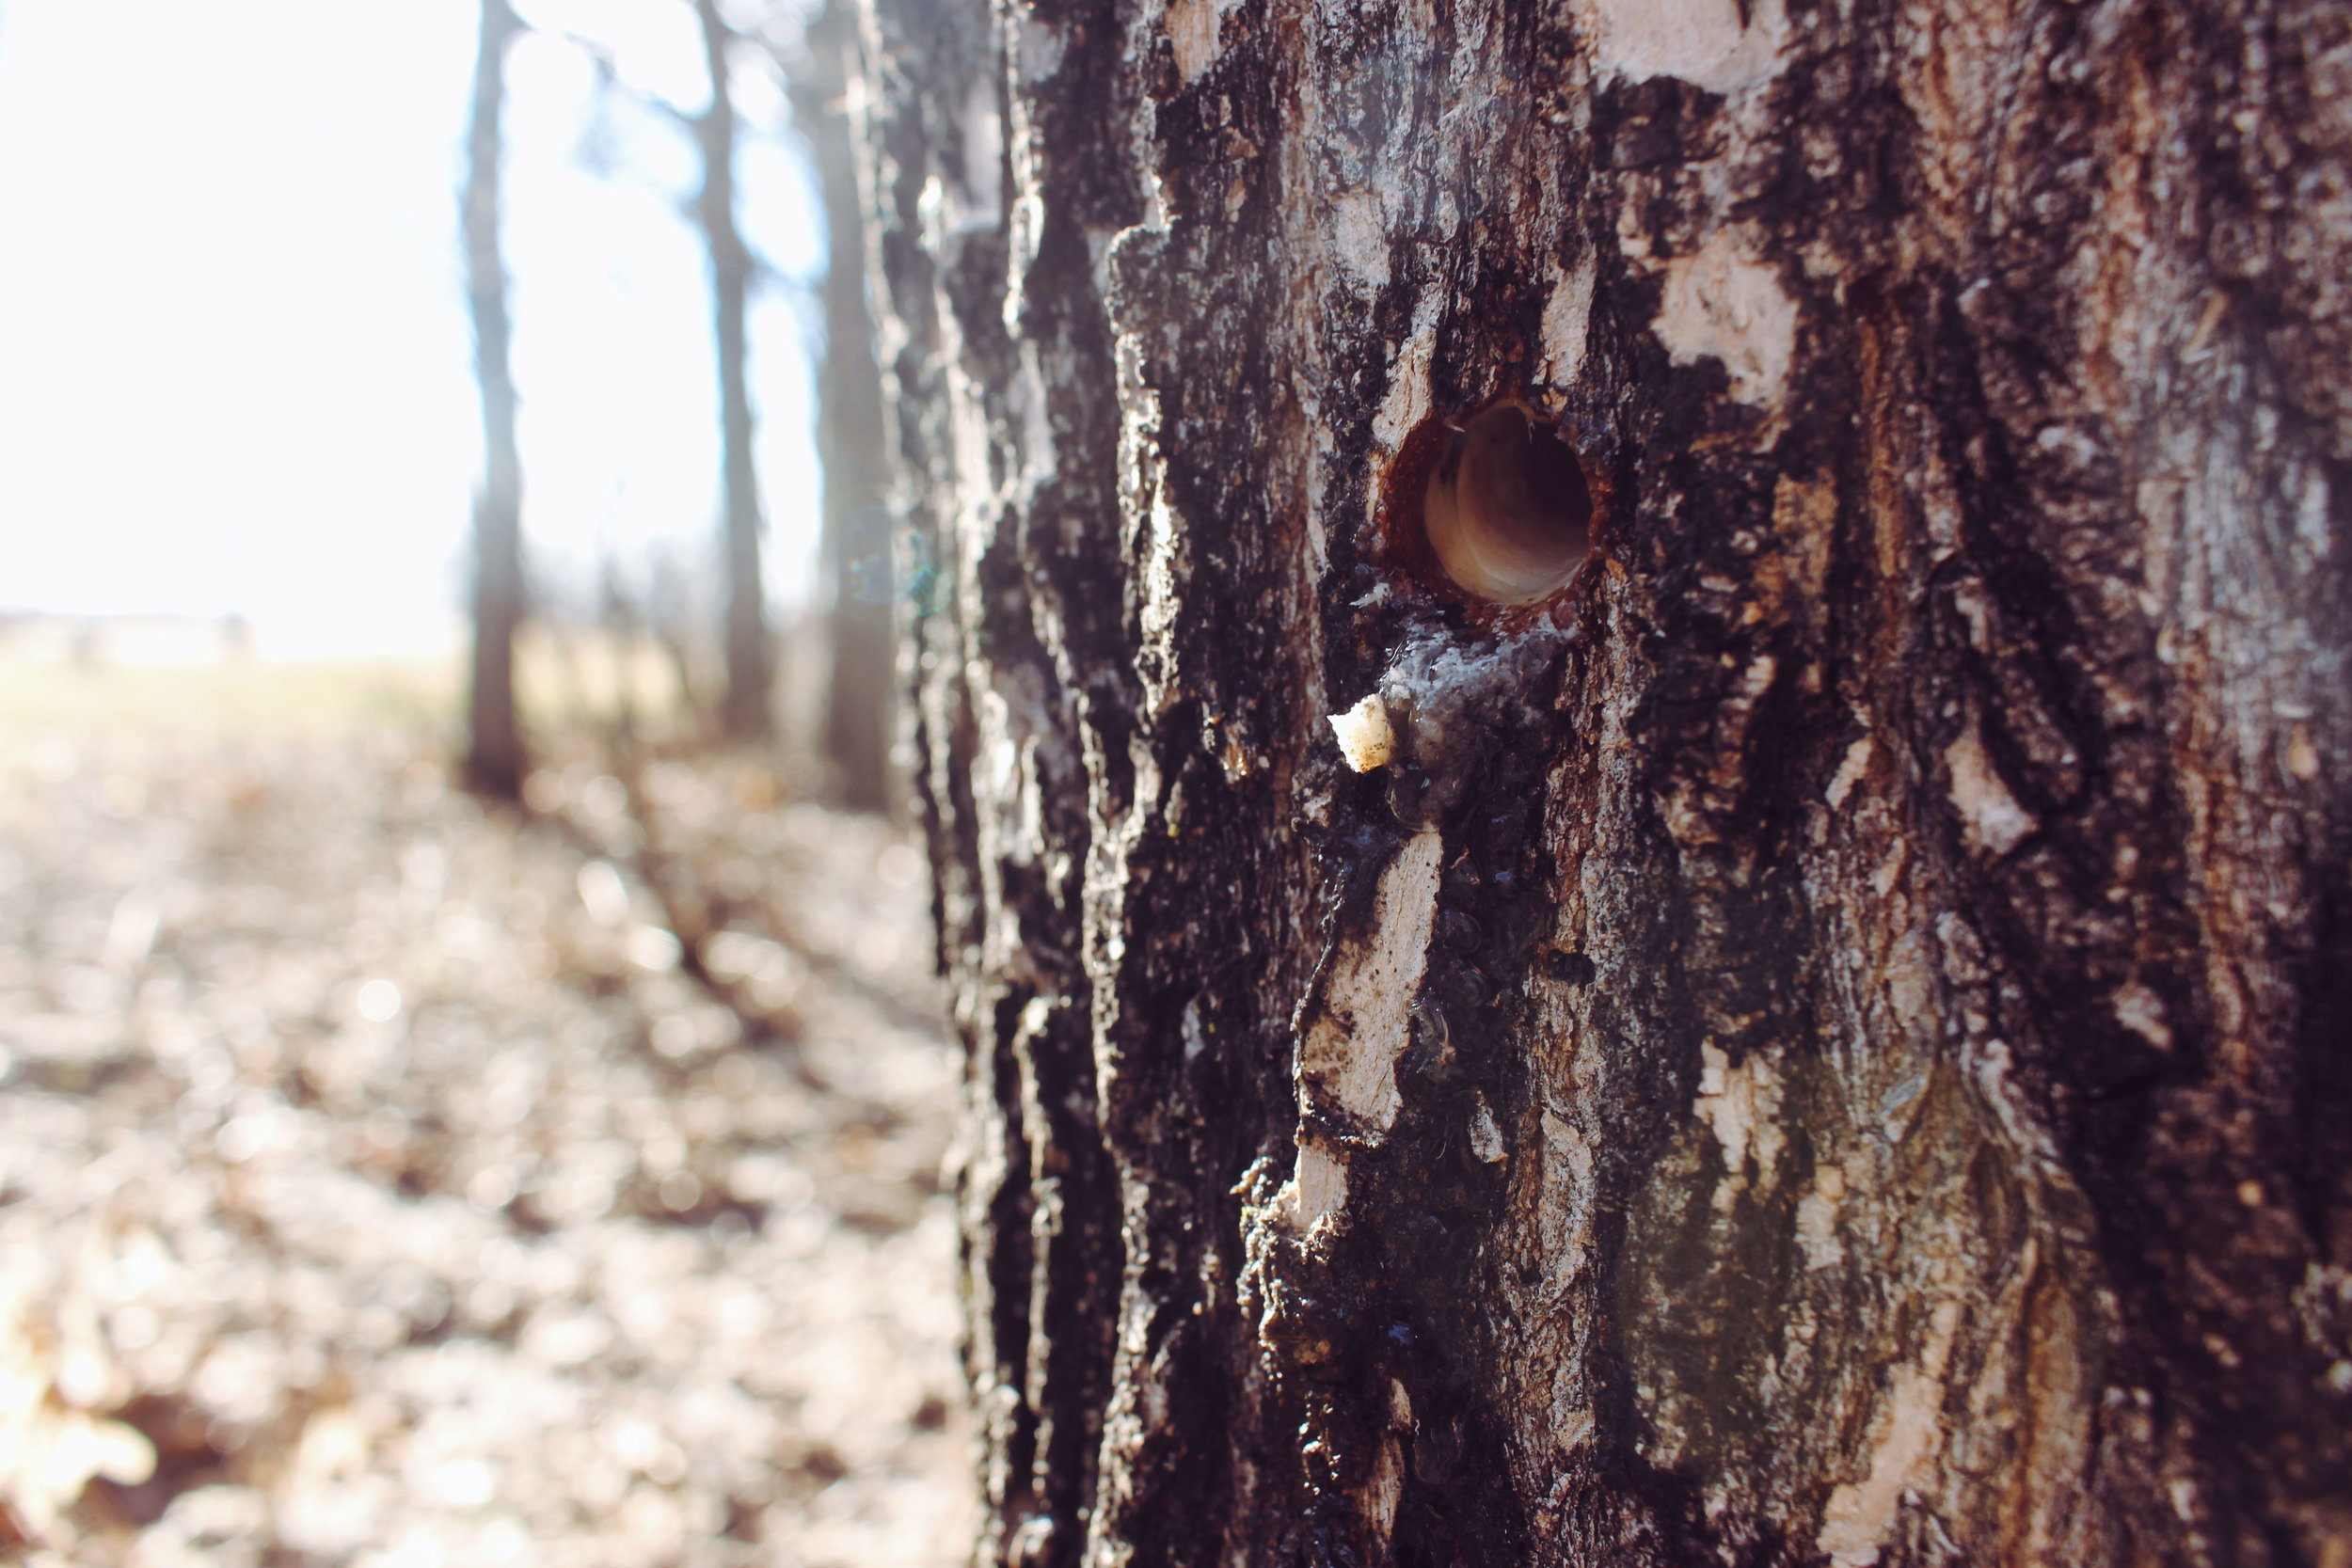 Removing the tap right after sap-collecting season is over allows the tree to heal.